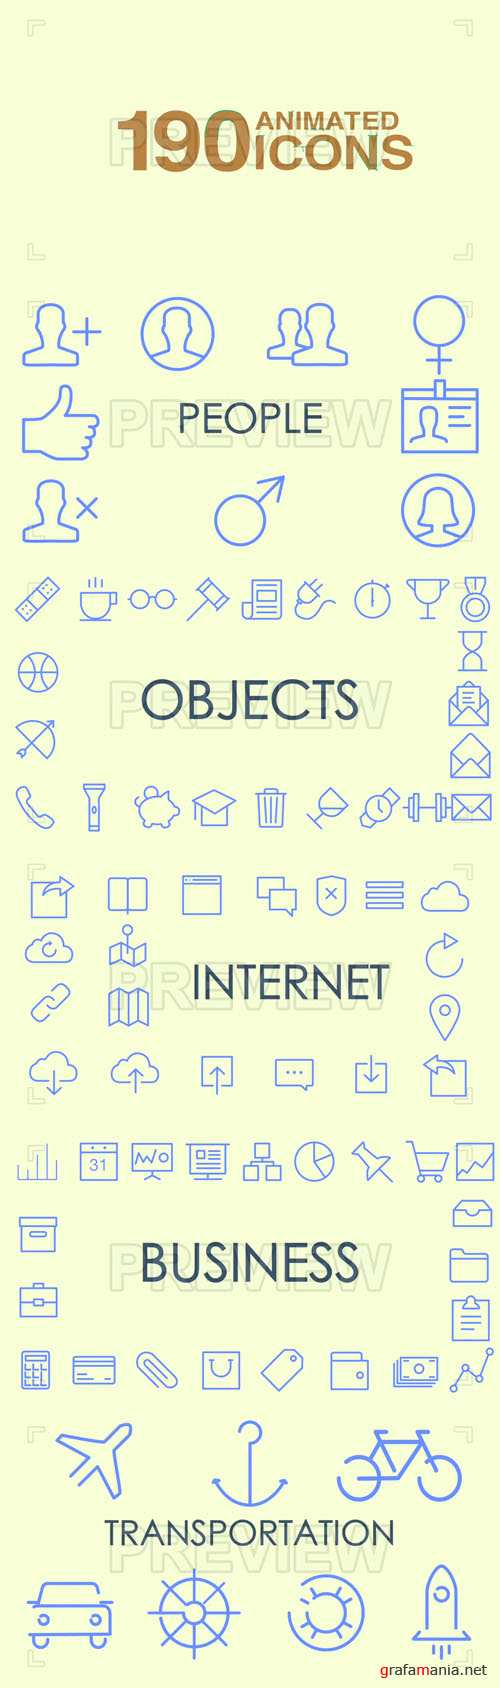 190 Animated Icons